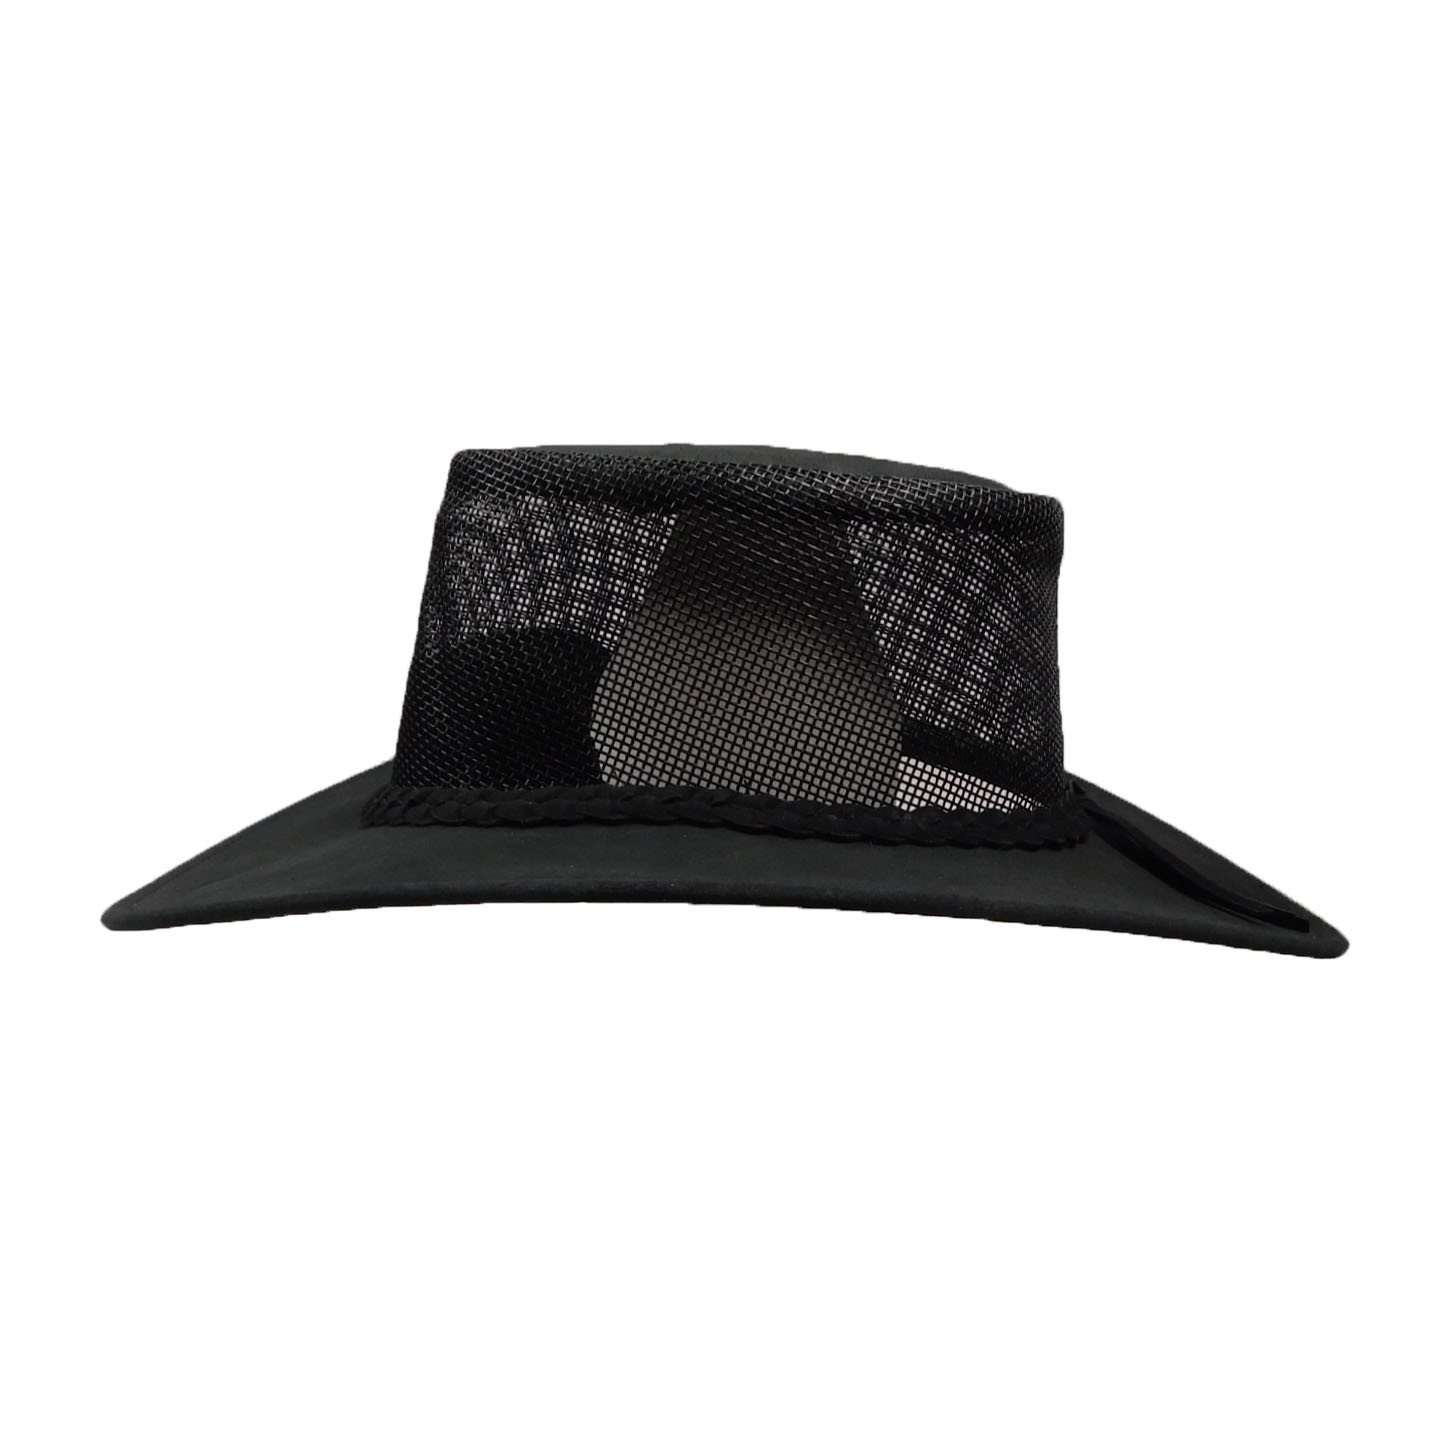 Bendigo by Kakadu Australia - Black - SetarTrading Hats